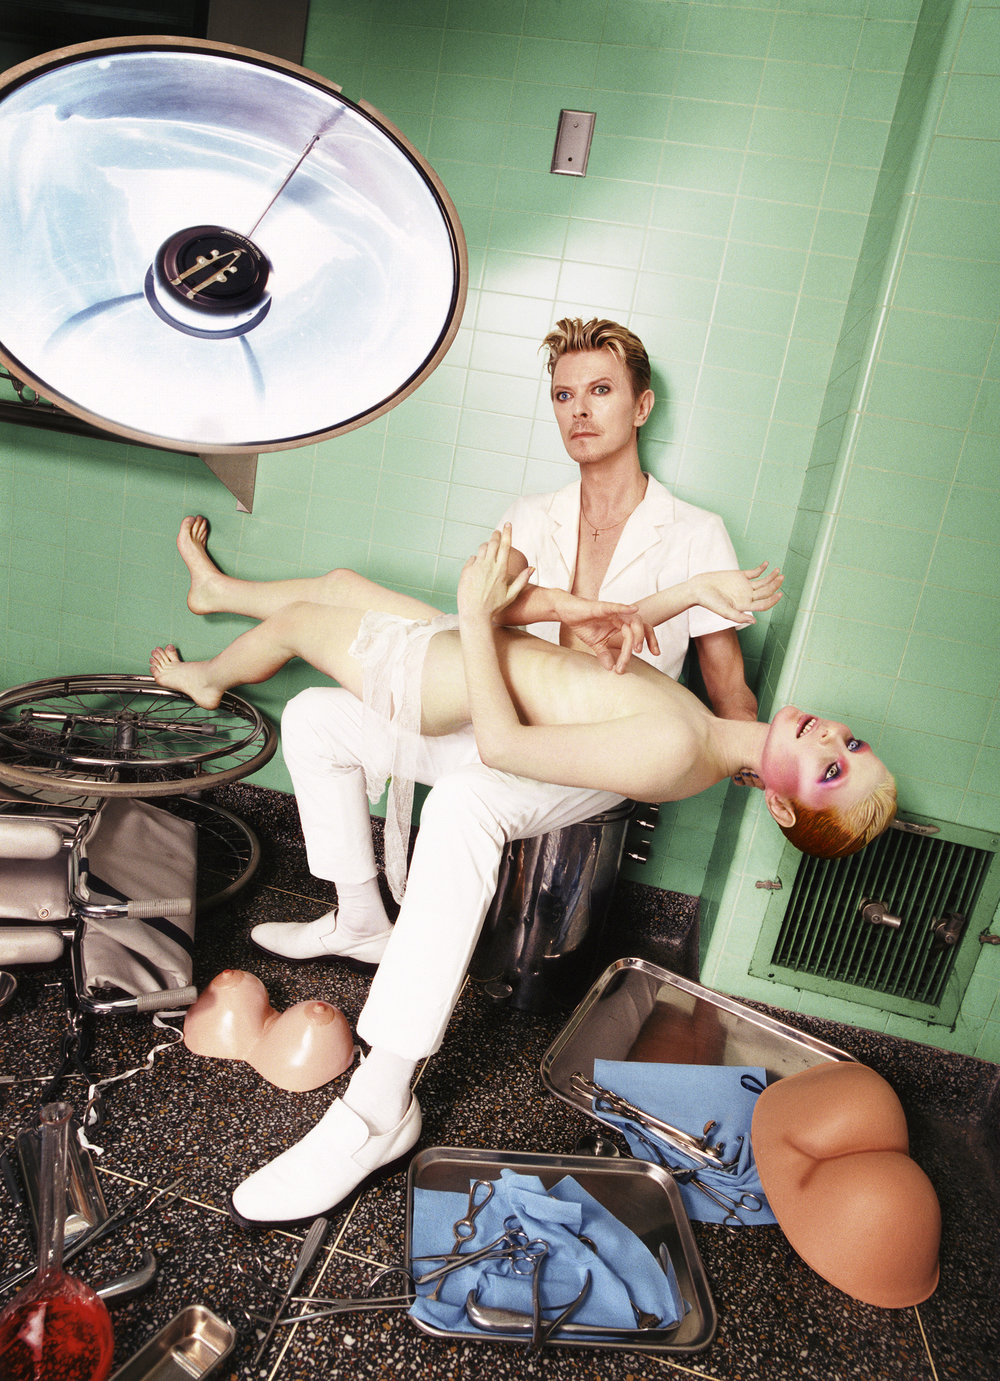 """David Bowie: Self Preservation, 1995"". David LaChapelle. © David LaChapelle / Courtesy Staley-Wise Gallery, New York"